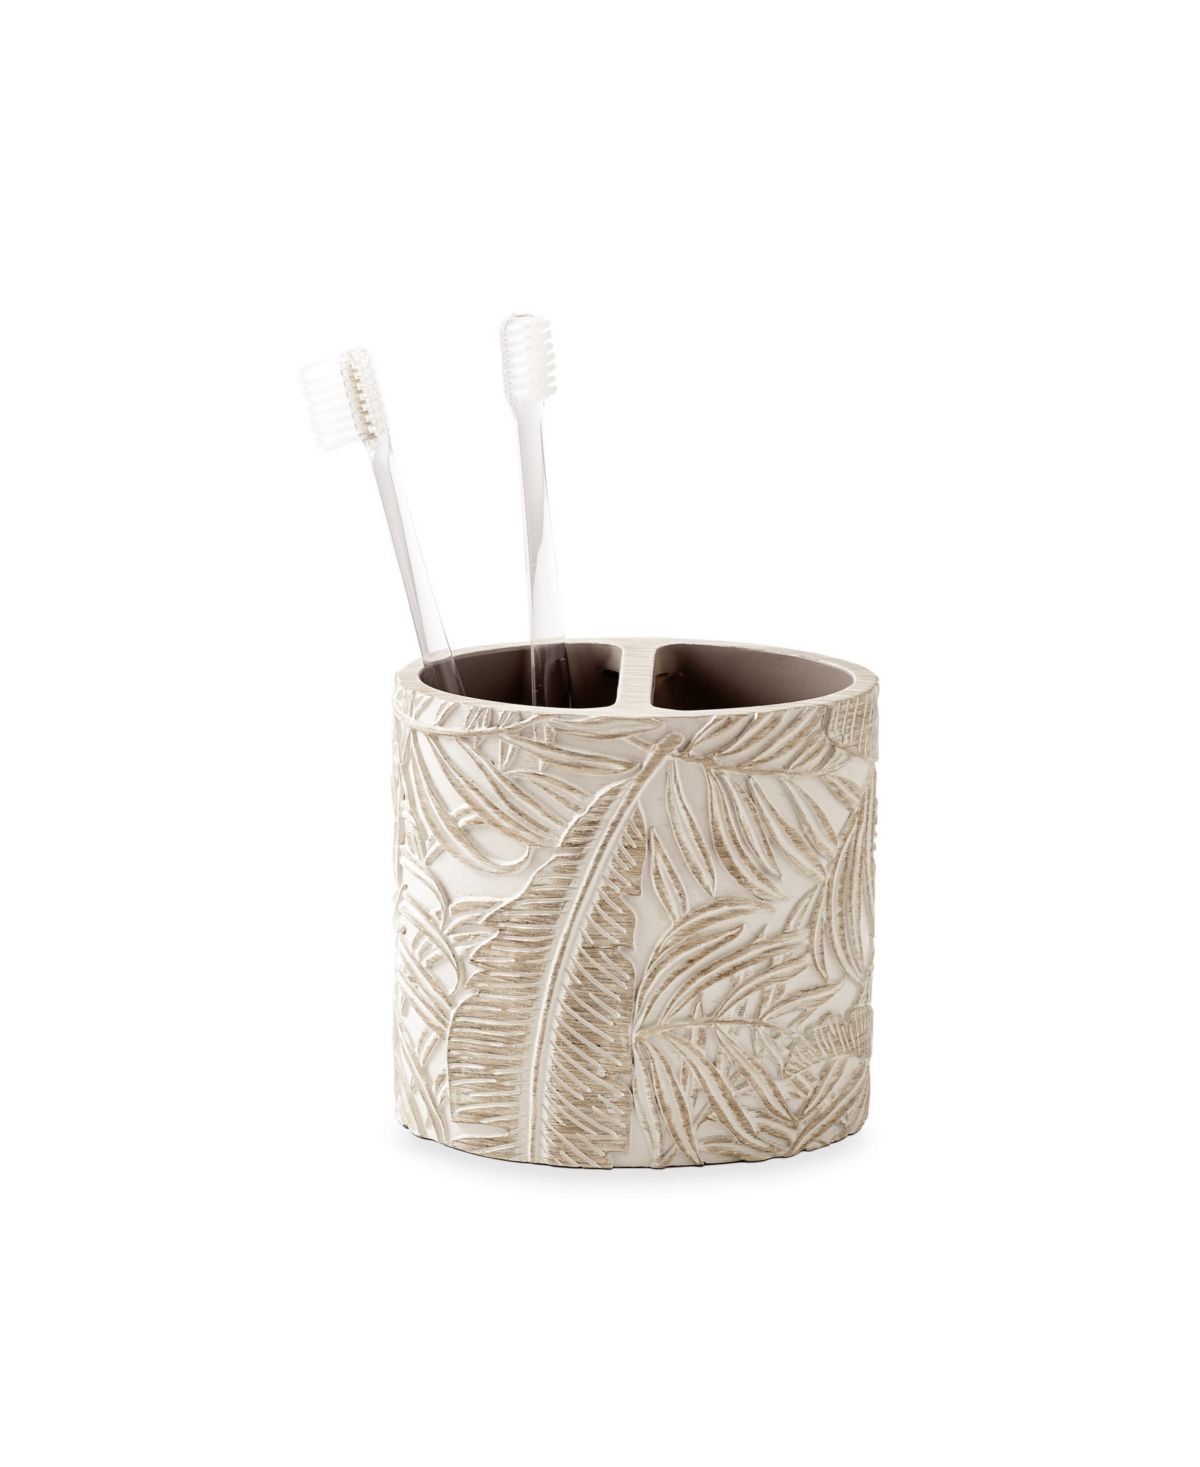 Destinations Palm Wood Bath Accessories Reviews Bathroom Bed Macy S Toothbrush Holder Brushing Teeth